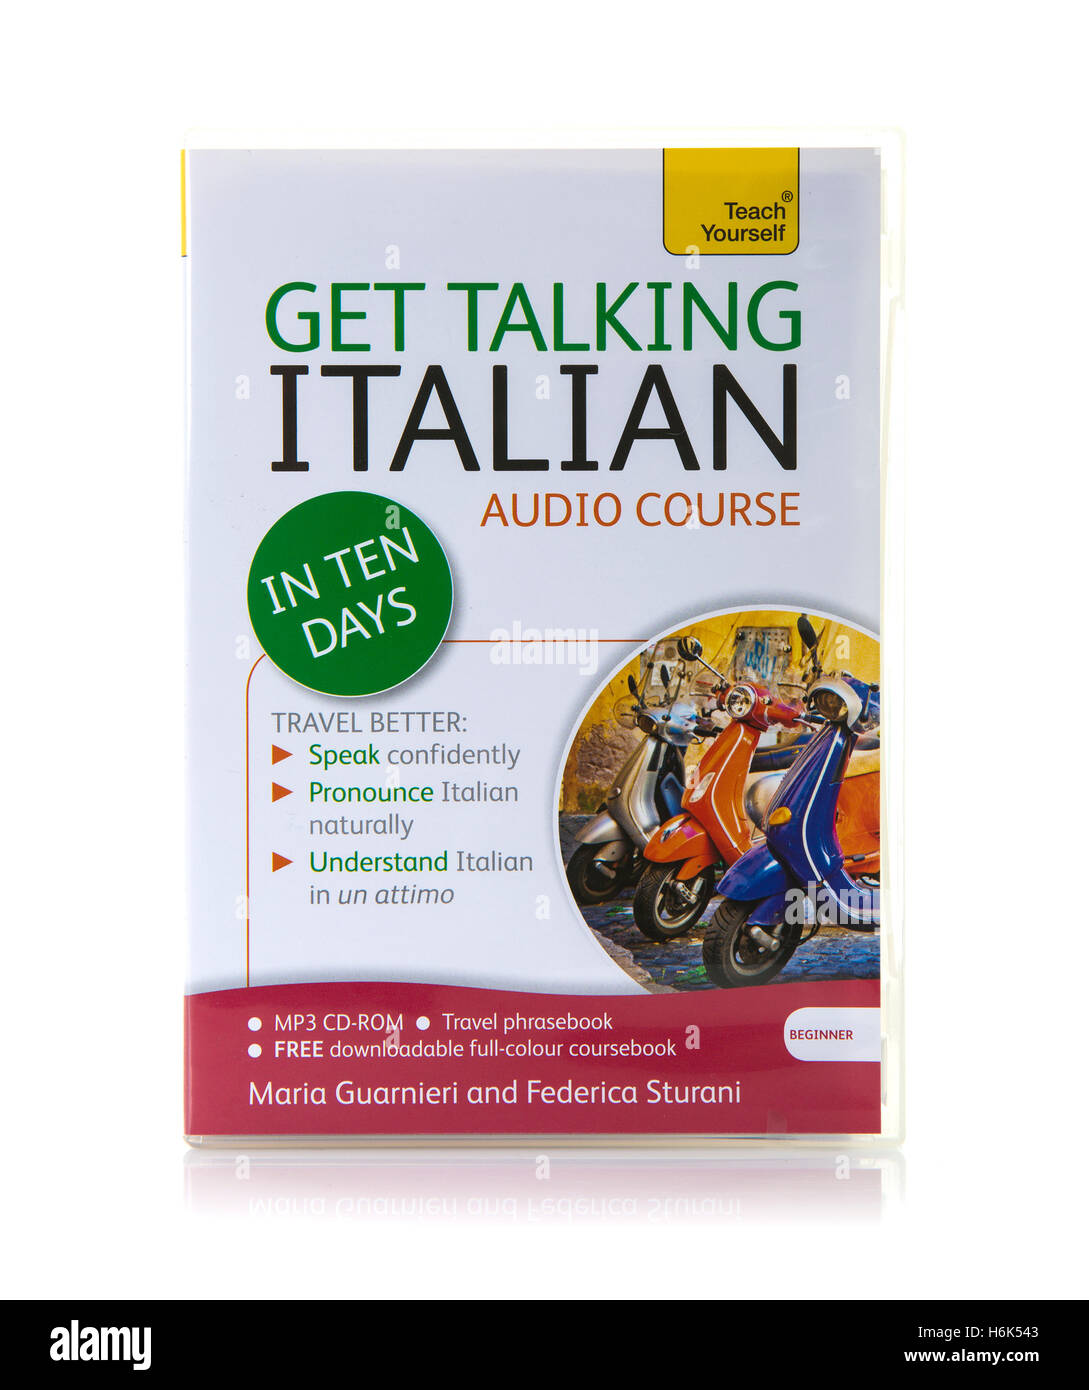 Teach Yourself Get Talking Italian Audio Course on CD and MP3 - Stock Image